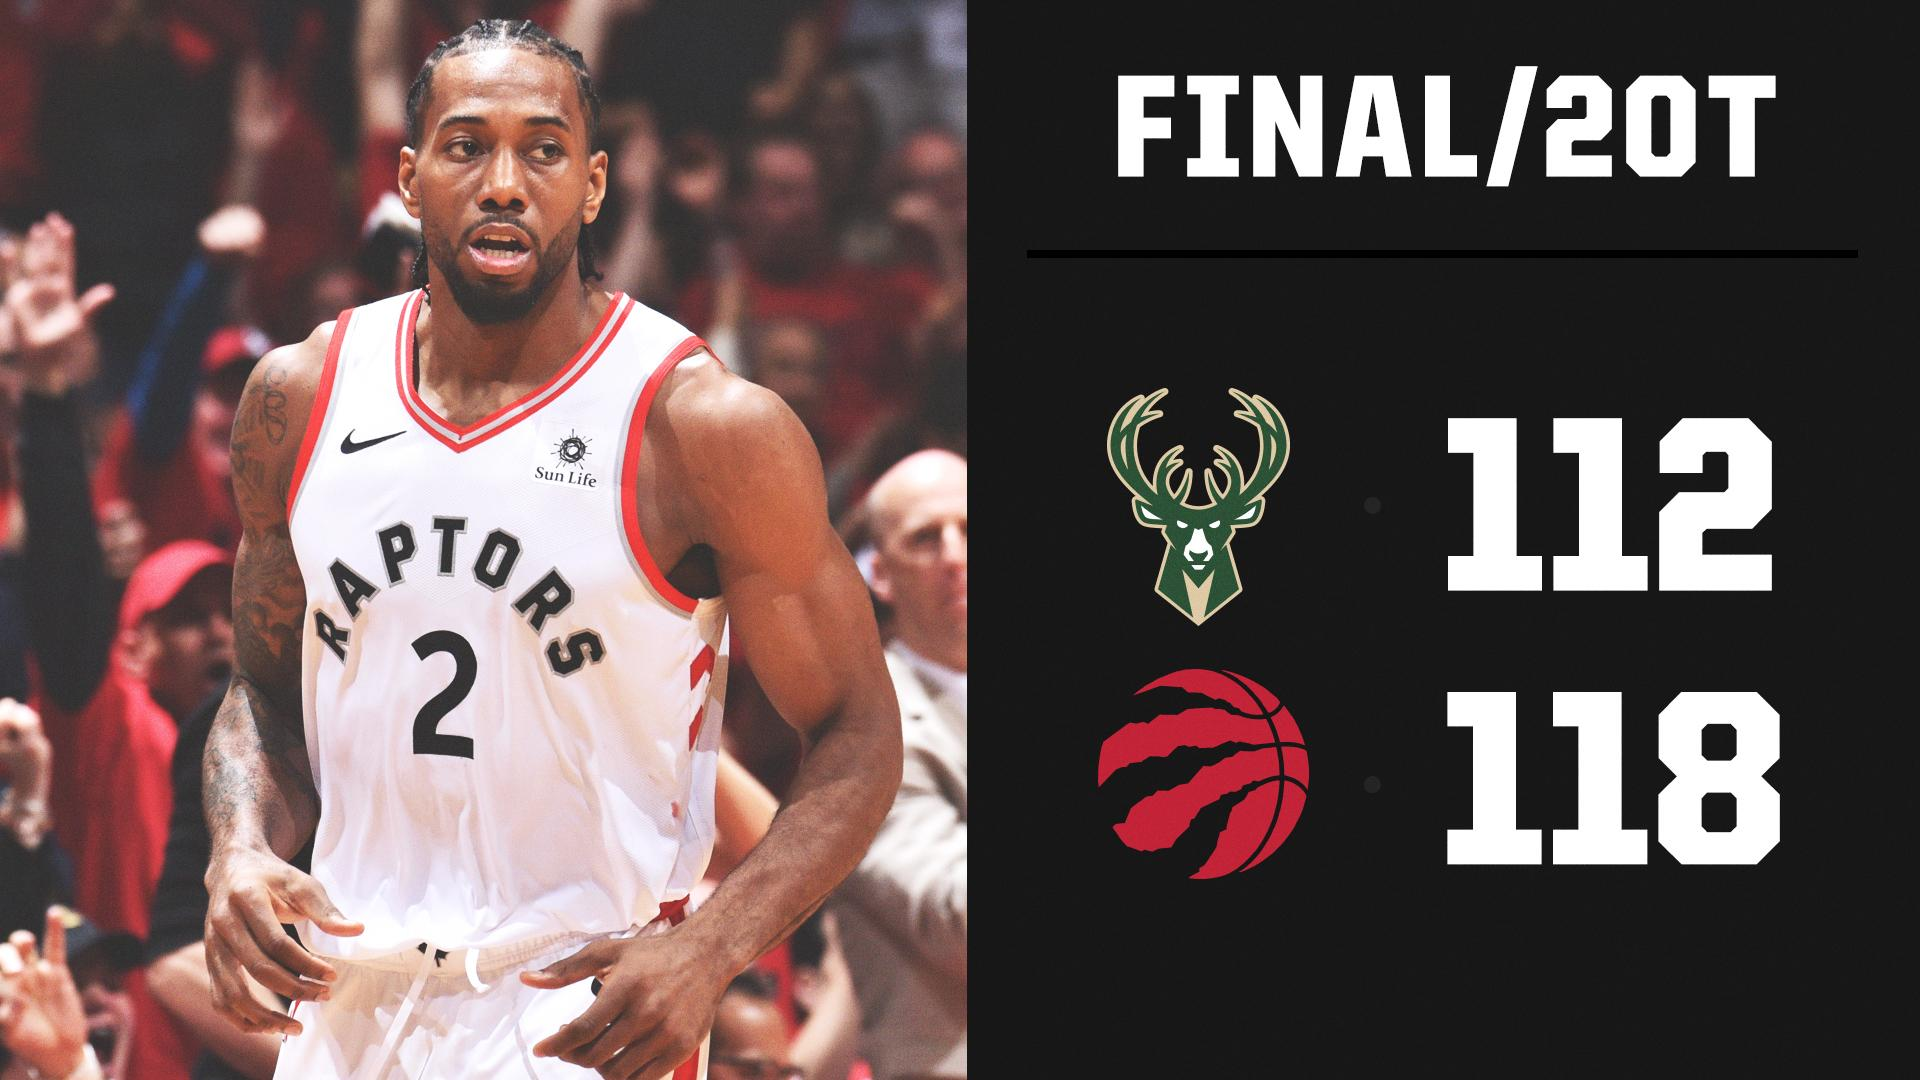 GAME 3 THRILLER!  Toronto survives at home in 2OT for its first win of the series. https://t.co/avTCSnqs7U